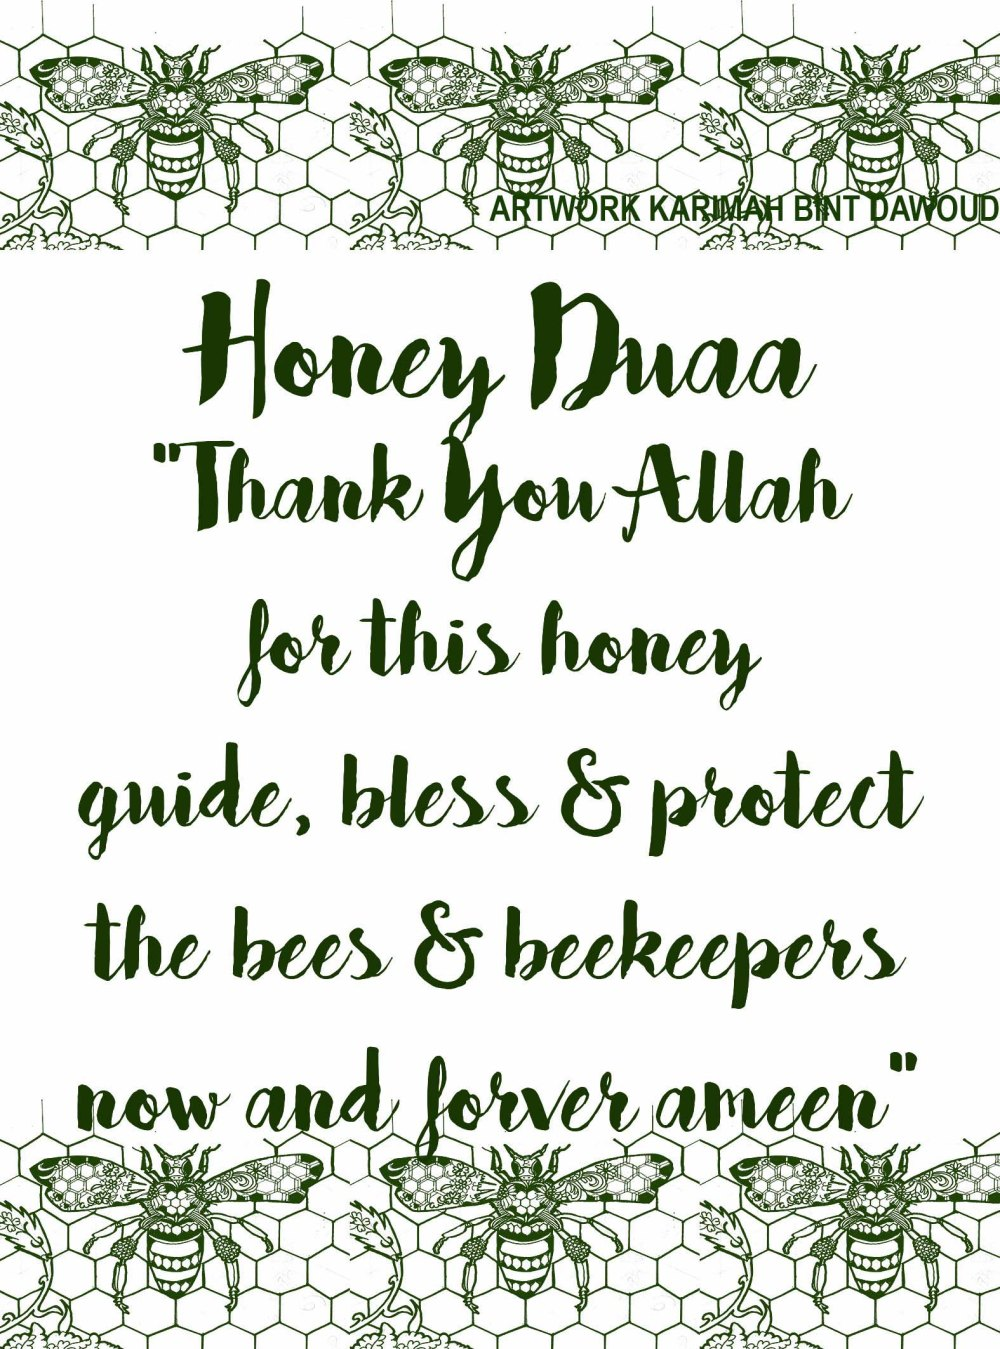 duaa honey